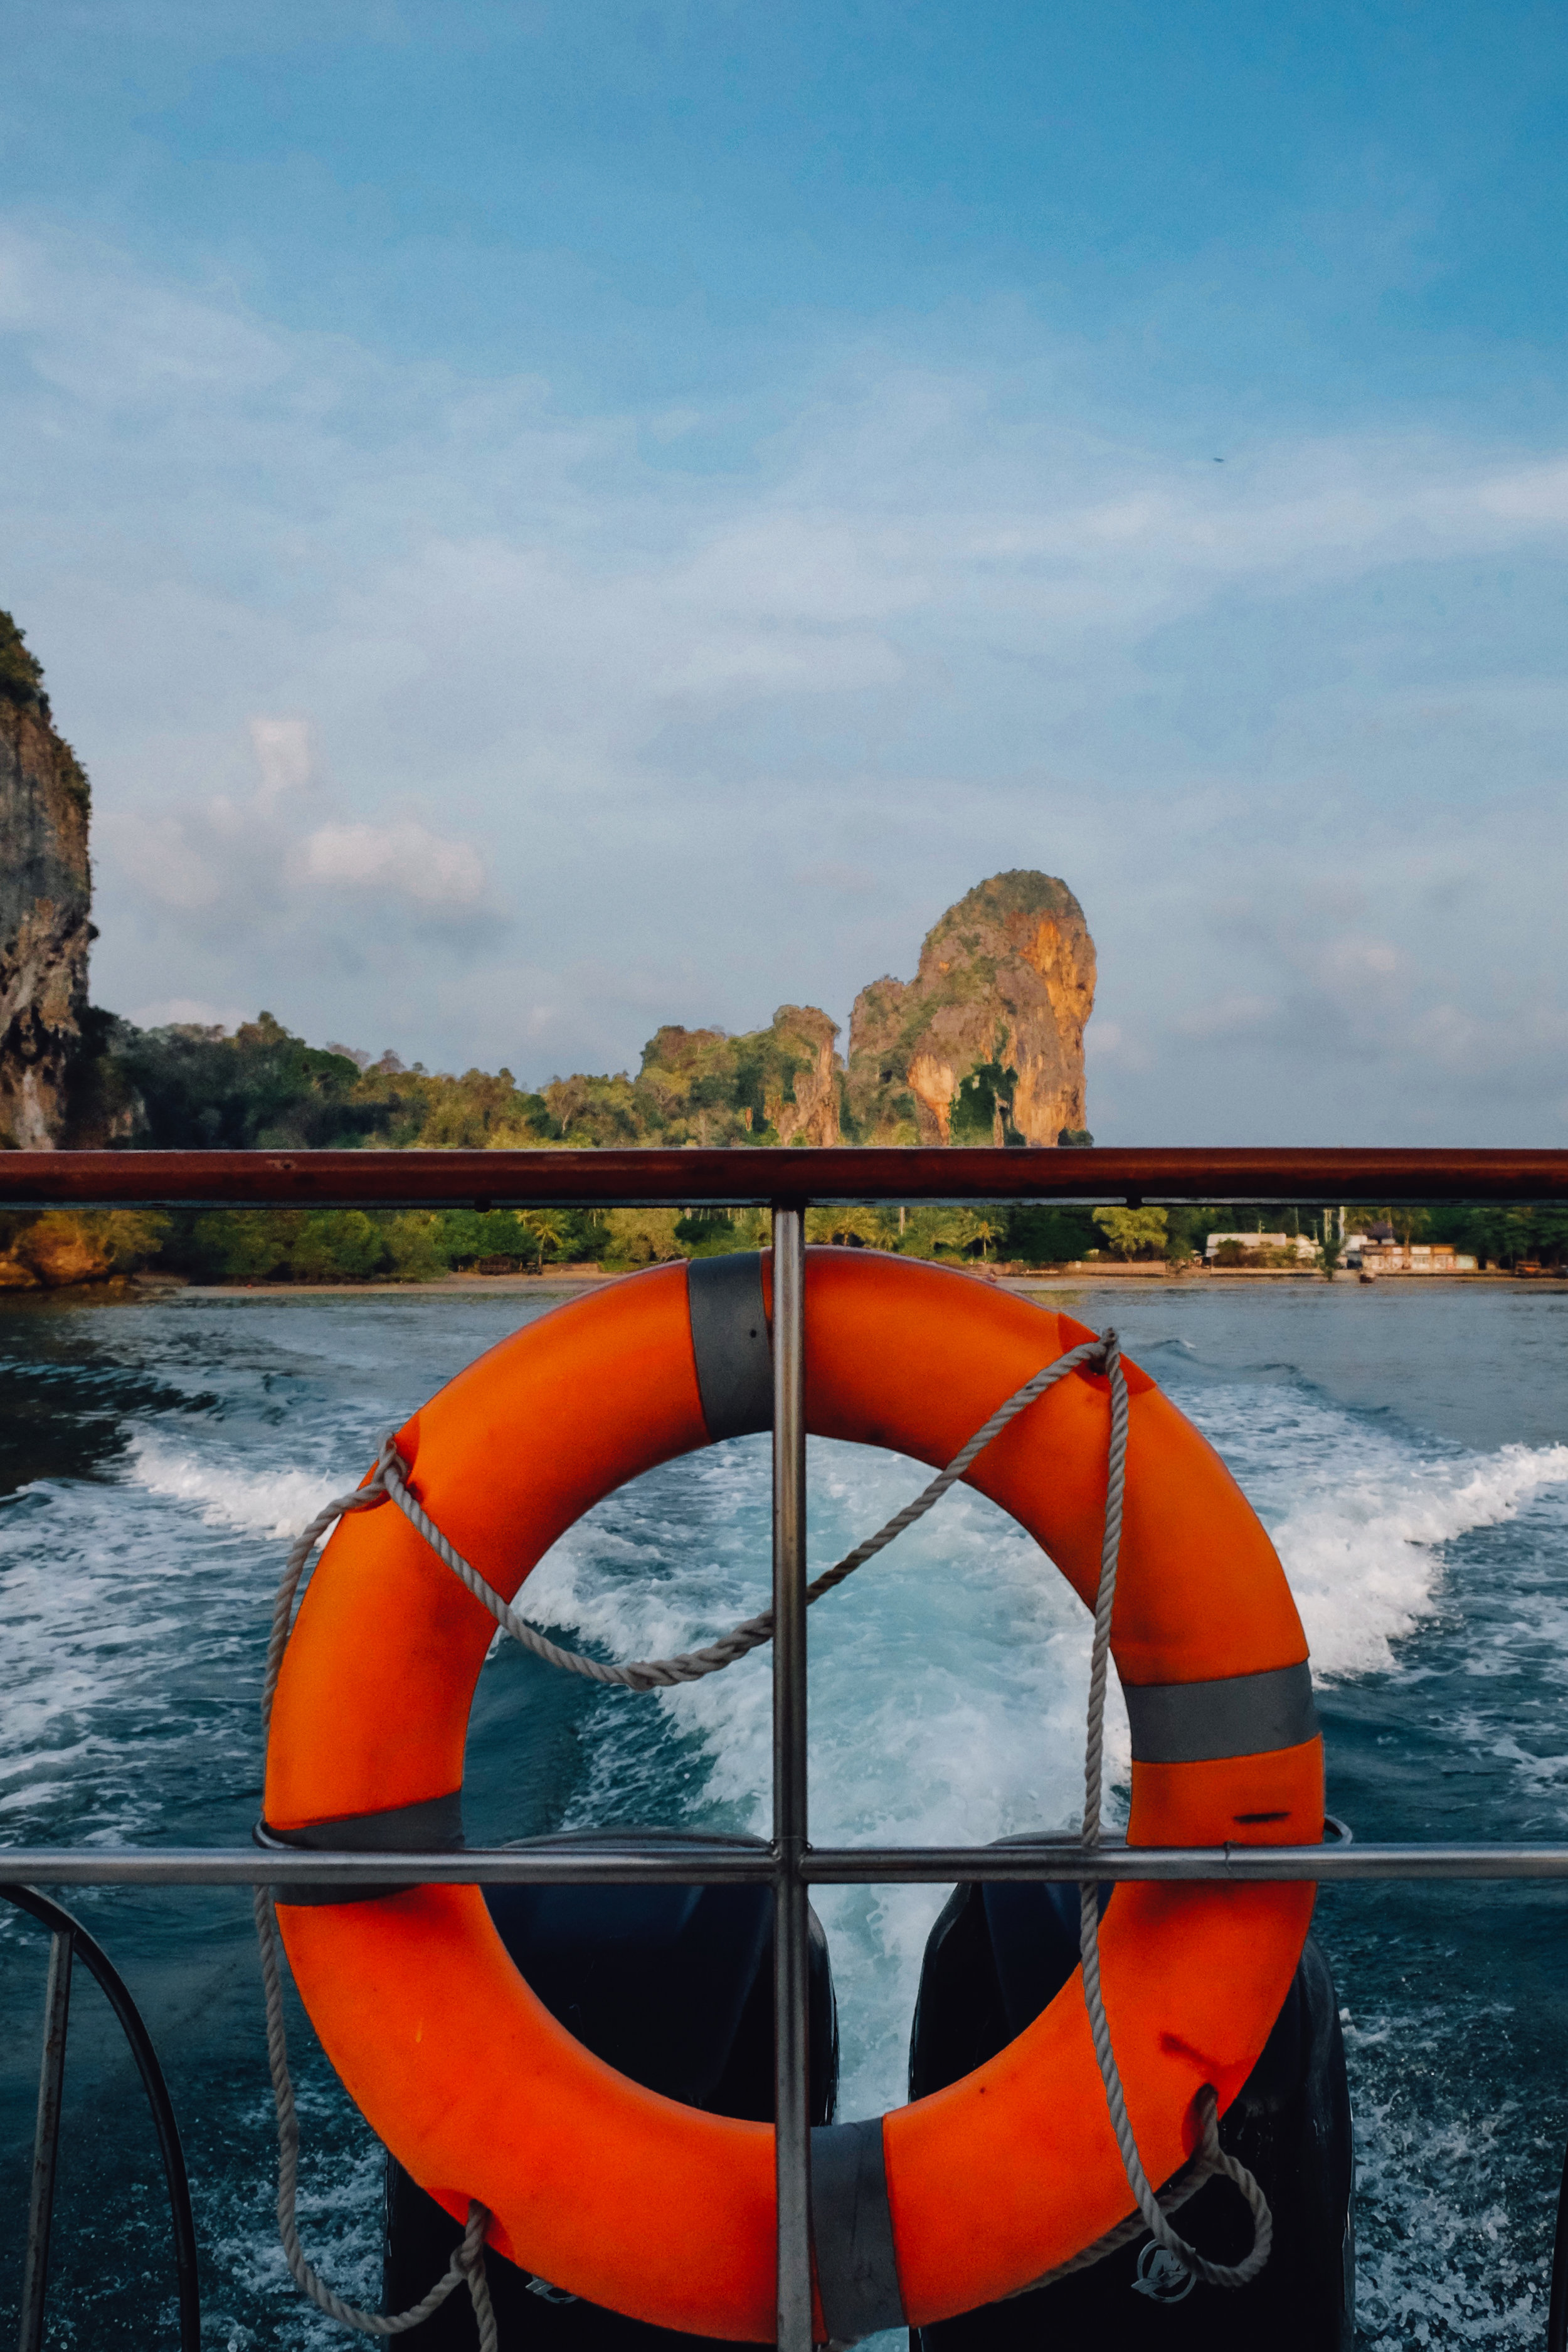 """View from the back of the boat when leaving the Rayavadee Resort in Krabi. Travel photography and guide by © Natasha Lequepeys for """"And Then I Met Yoko"""". #thailand #seasia #travelguide #photoblog #travelblog #travelphotography #landscapephotography #travelitinerary #fujifilm #krabi #beachvacation #honeymoon #boat #rayavadee #resort #luxury #luxurytravel #spa #travelblogger #travel"""